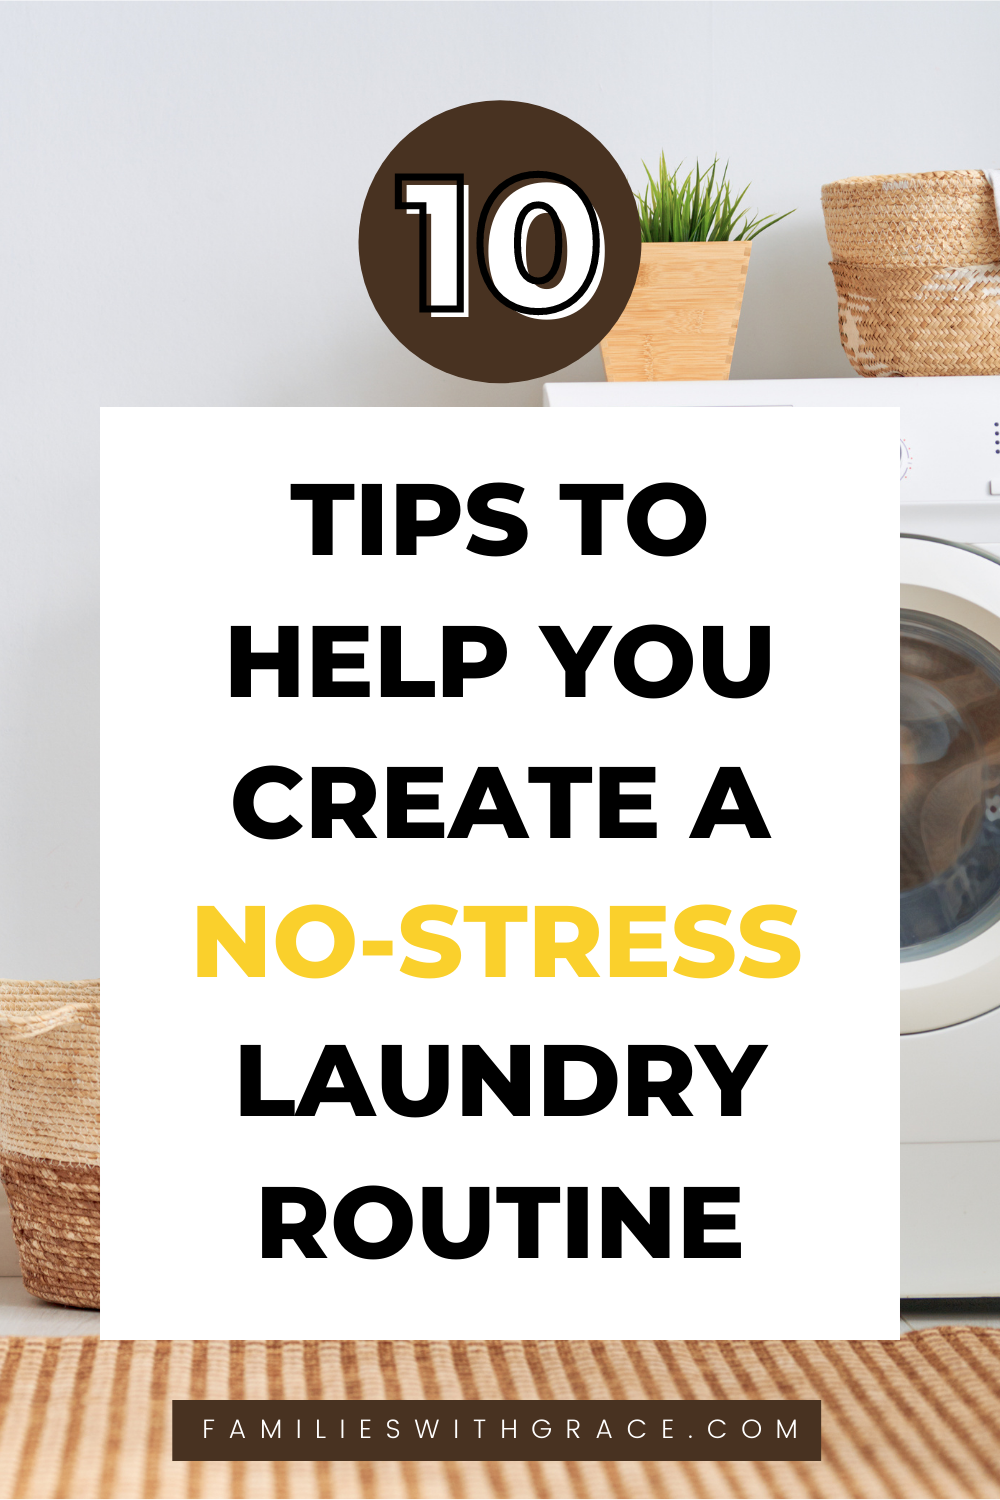 Create a laundry routine that works